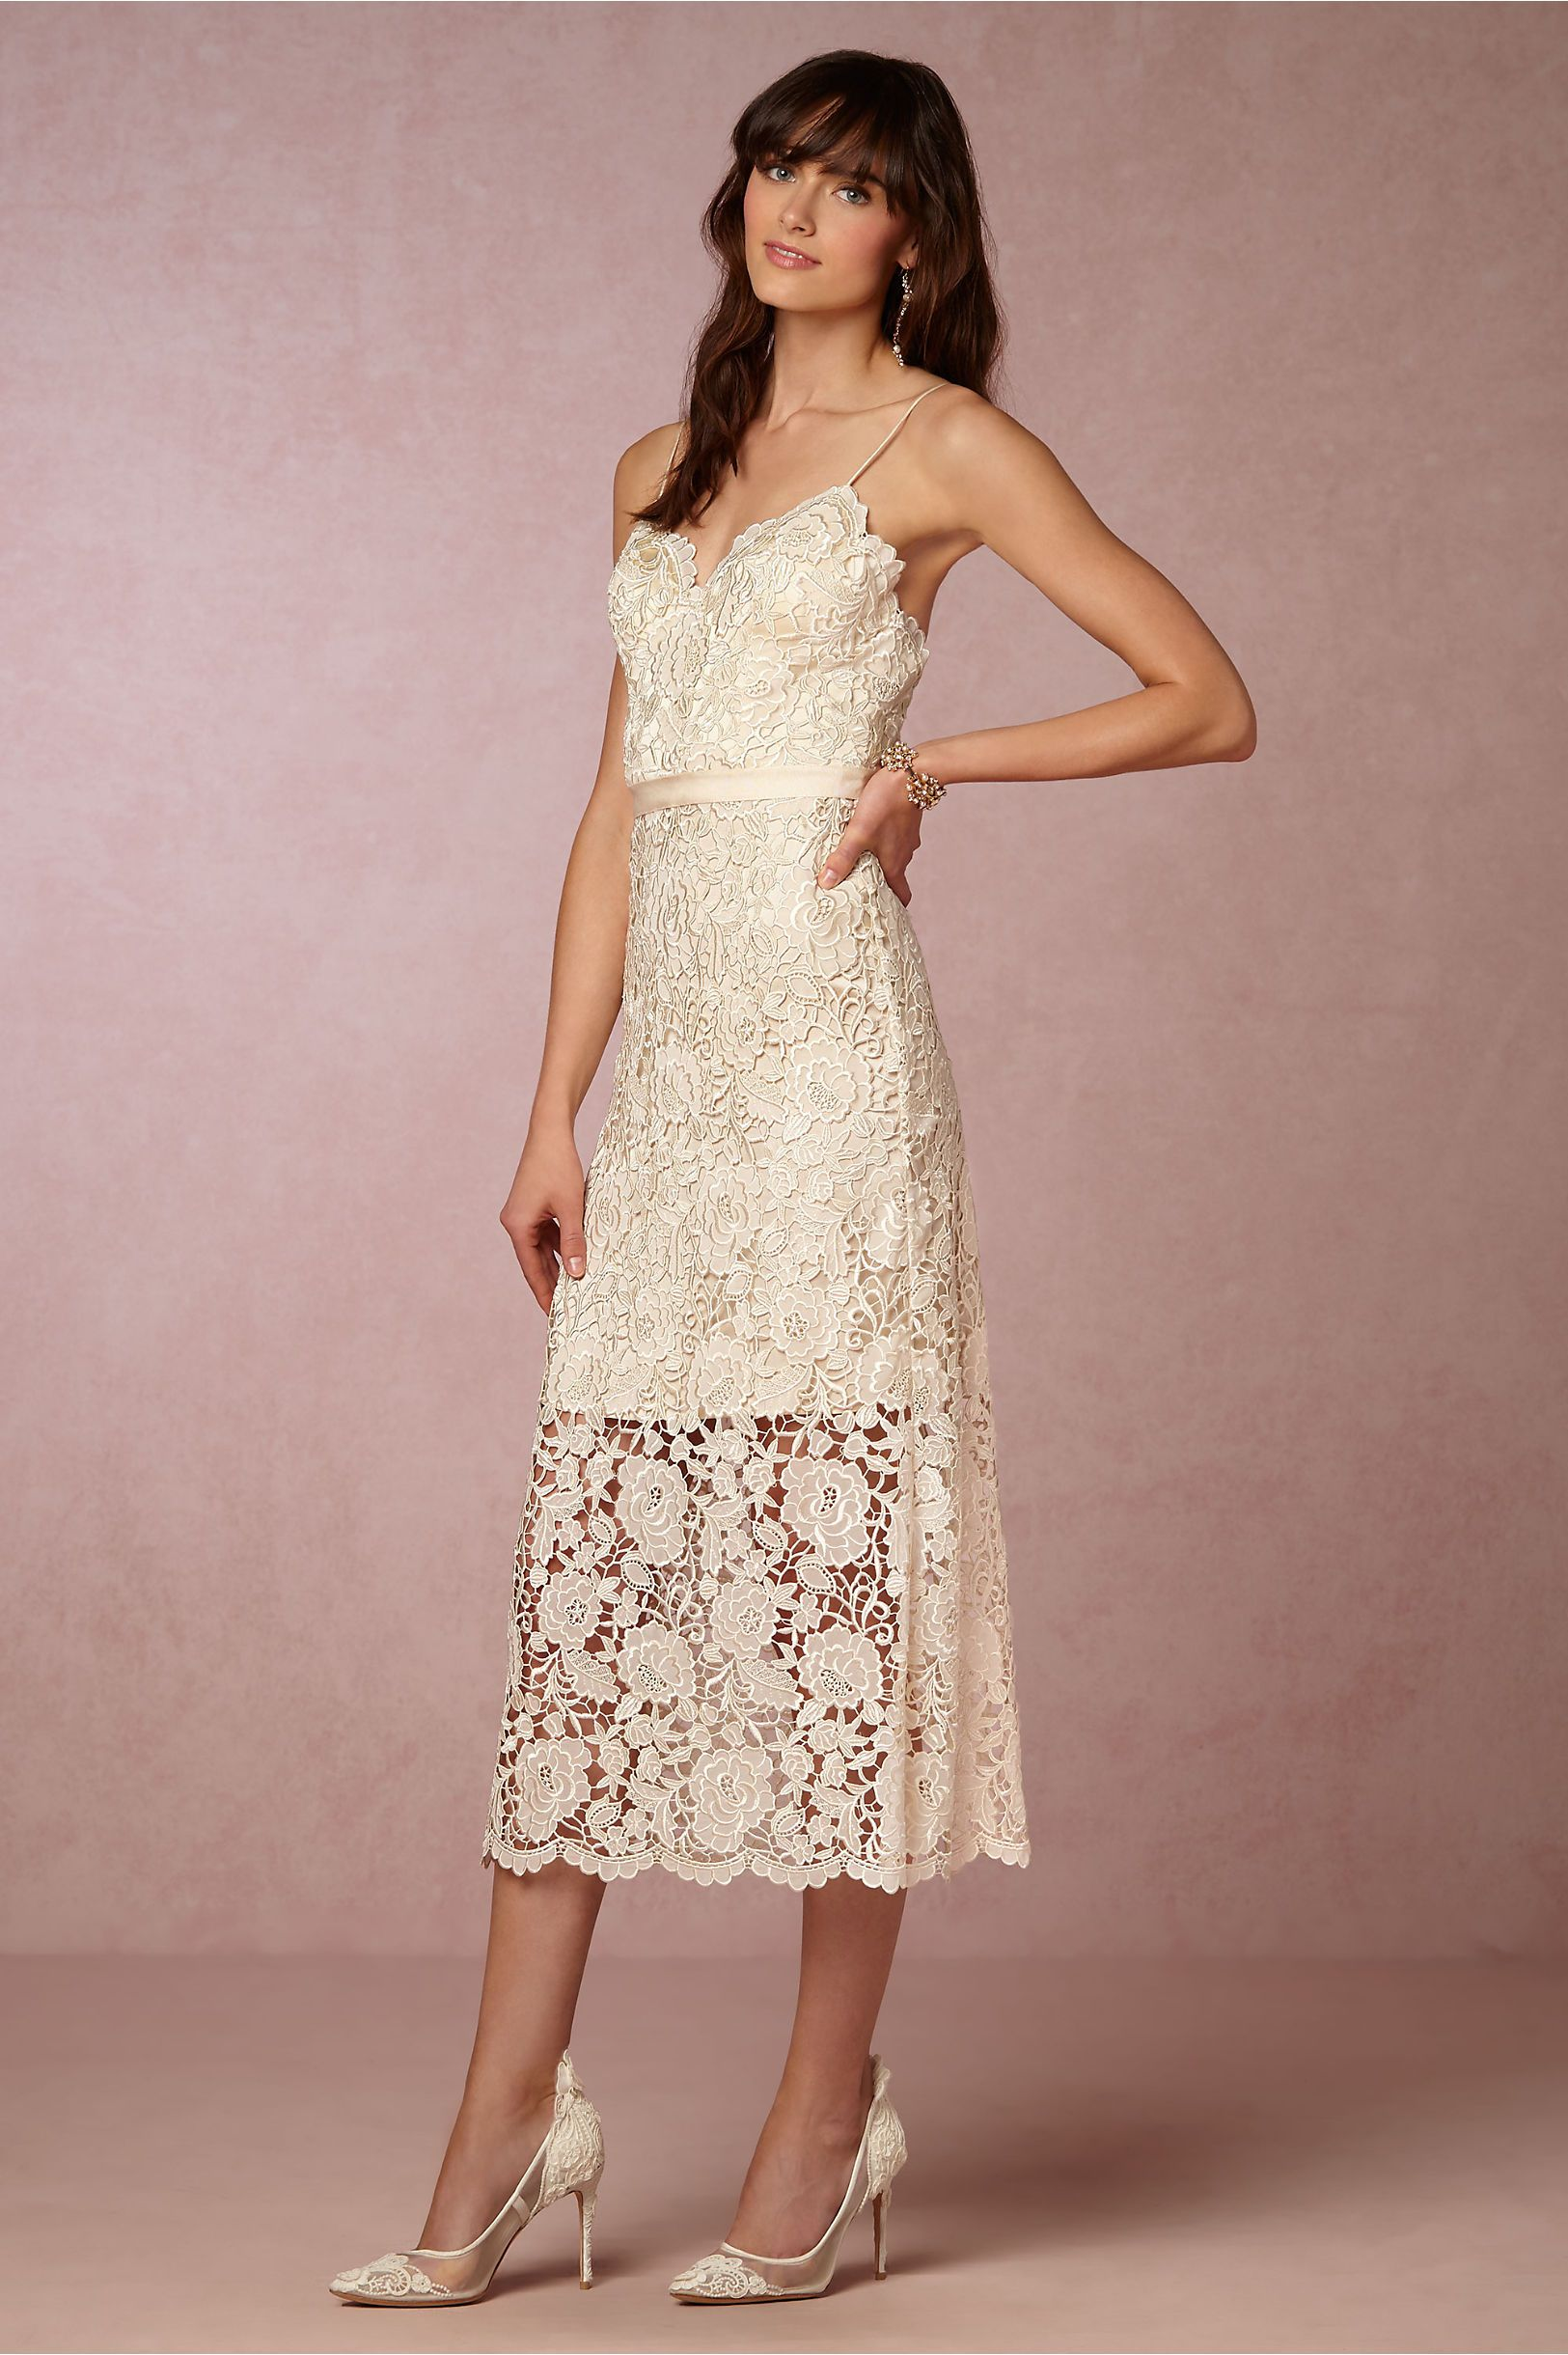 da6fc55195 BHLDN s Catherine Deane Halo Dress in Champagne